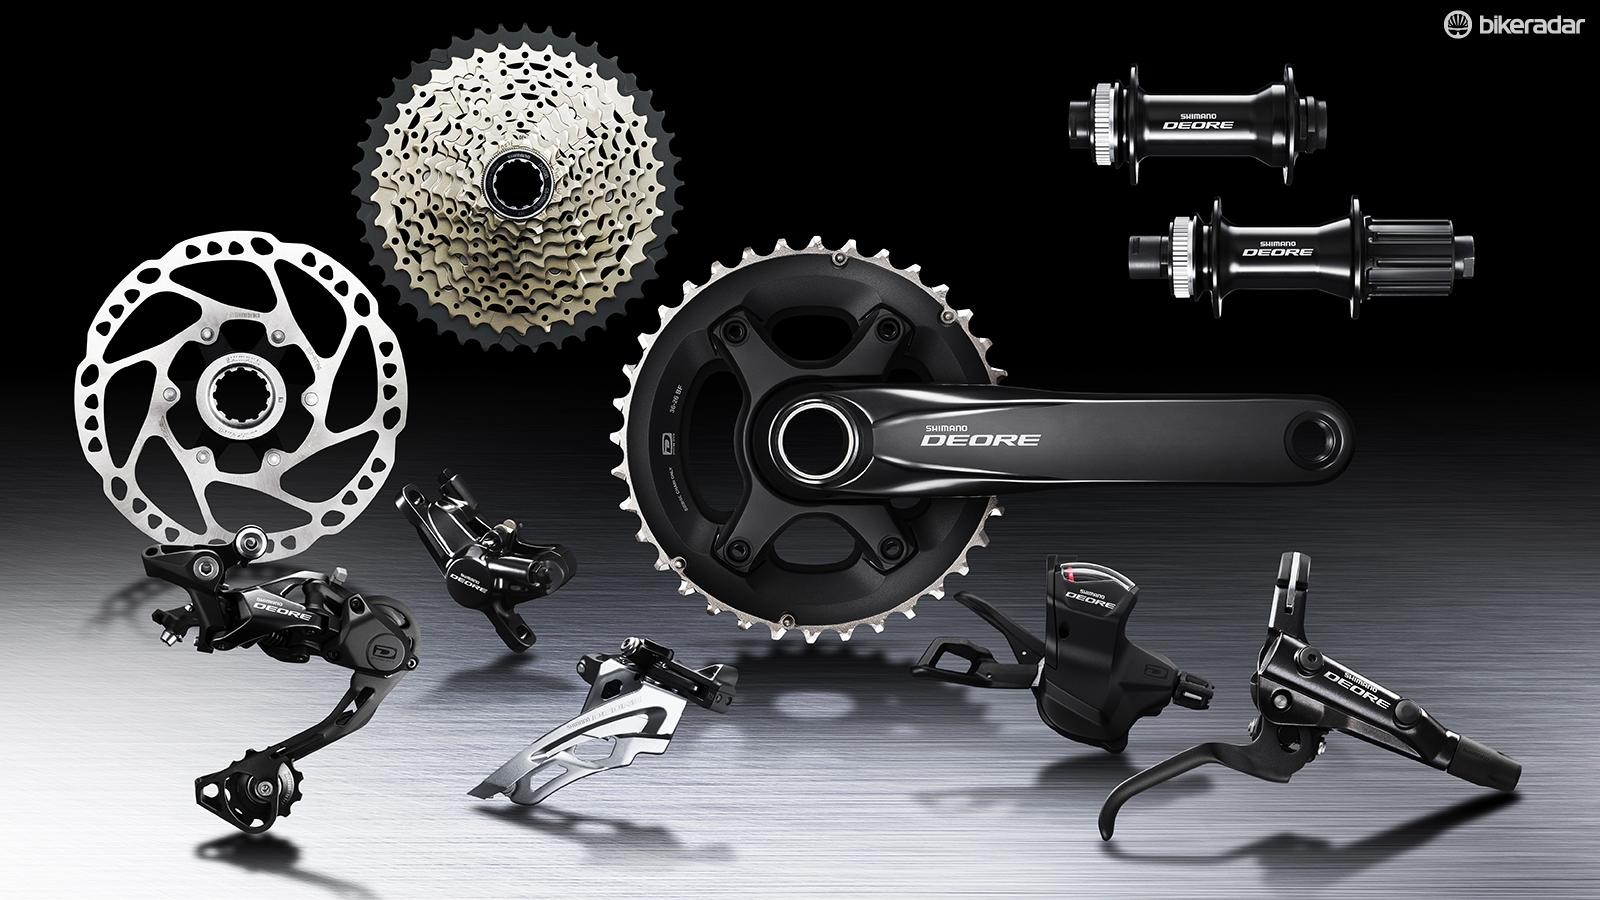 Shimano has updated its core mountain bike groups, with special attention given to Deore M6000